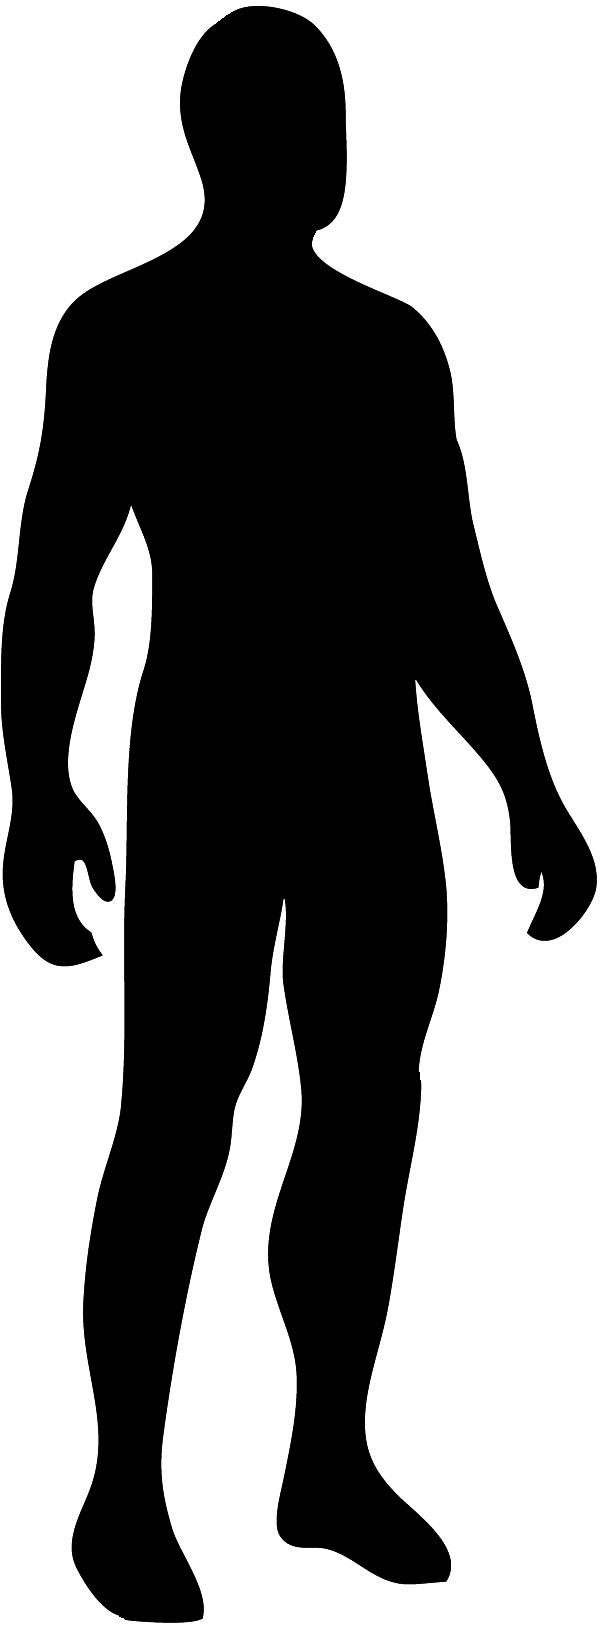 Body Silhouette Male Silhouette Black Jpg